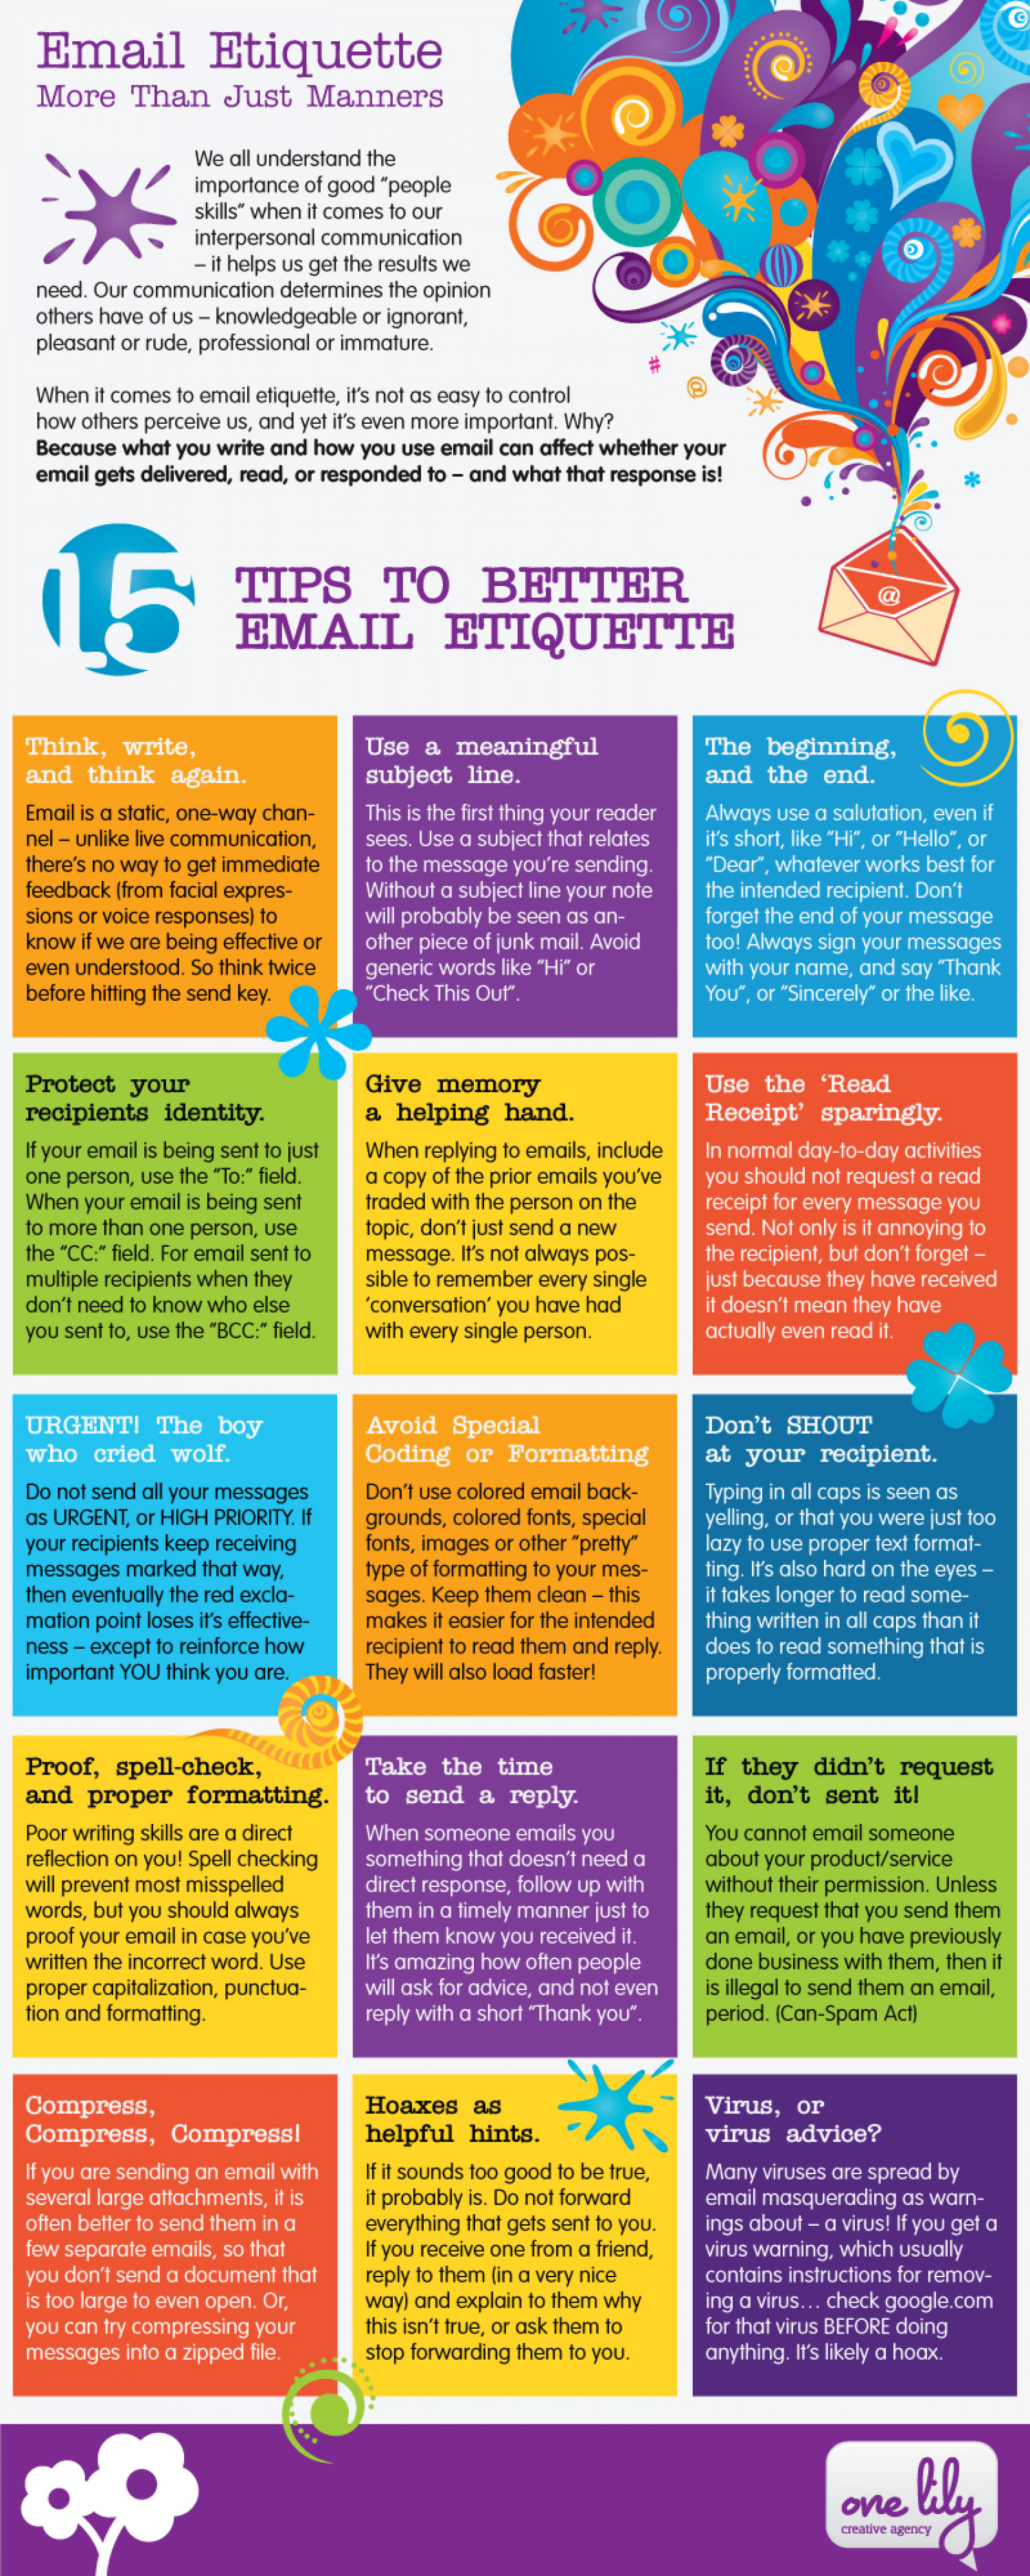 Email Etiquette: More Than Just Manners Infographic